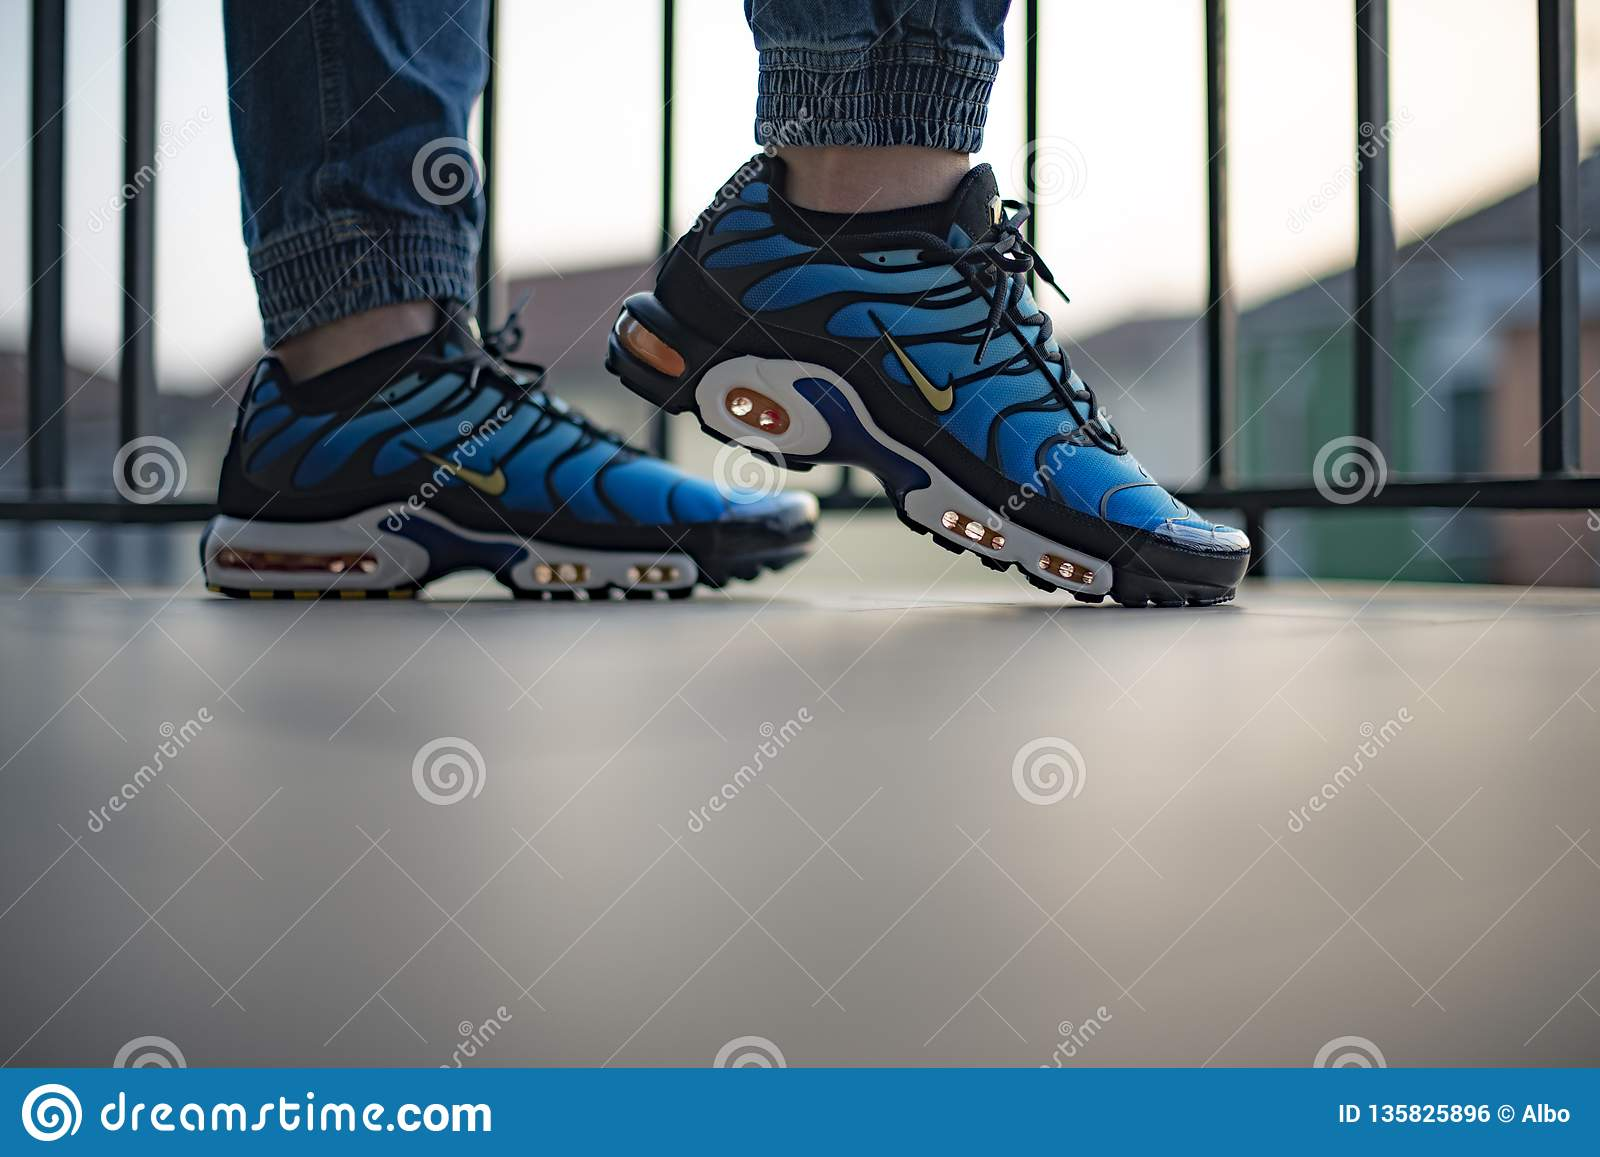 be0fdfd3 Milan, Italy - December 1, 2018: Young man wearing Nike Air Max Plus TN  Hyperblue shoes in the street - illustrative editorial. More similar stock  images